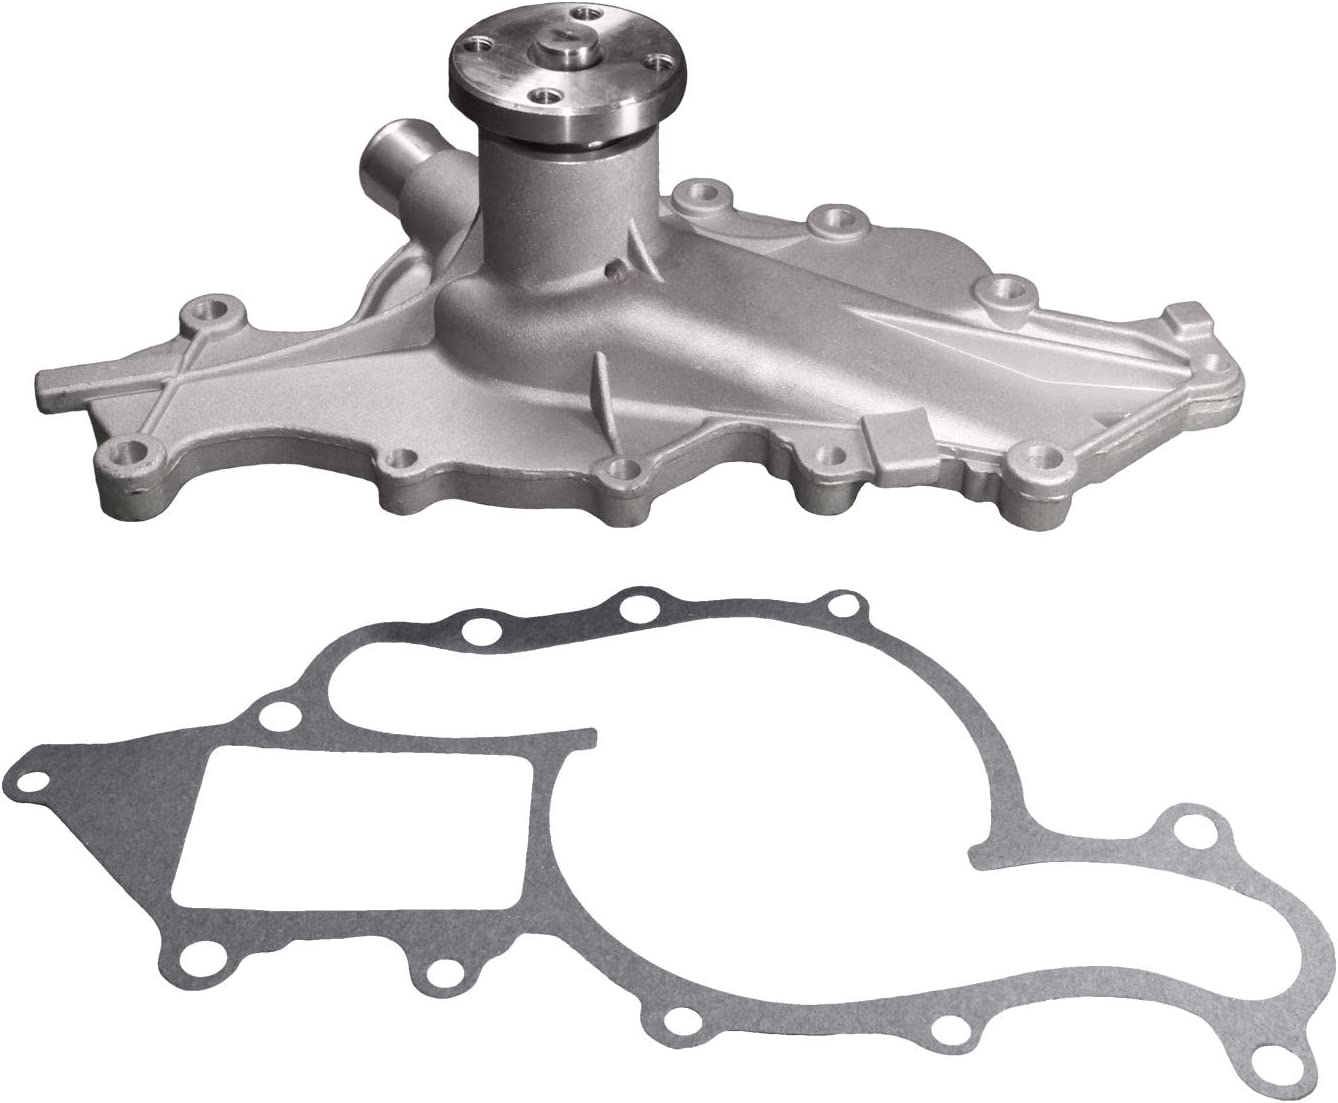 ACDelco Professional Max 53% OFF 252-670 Kit Ultra-Cheap Deals Water Pump